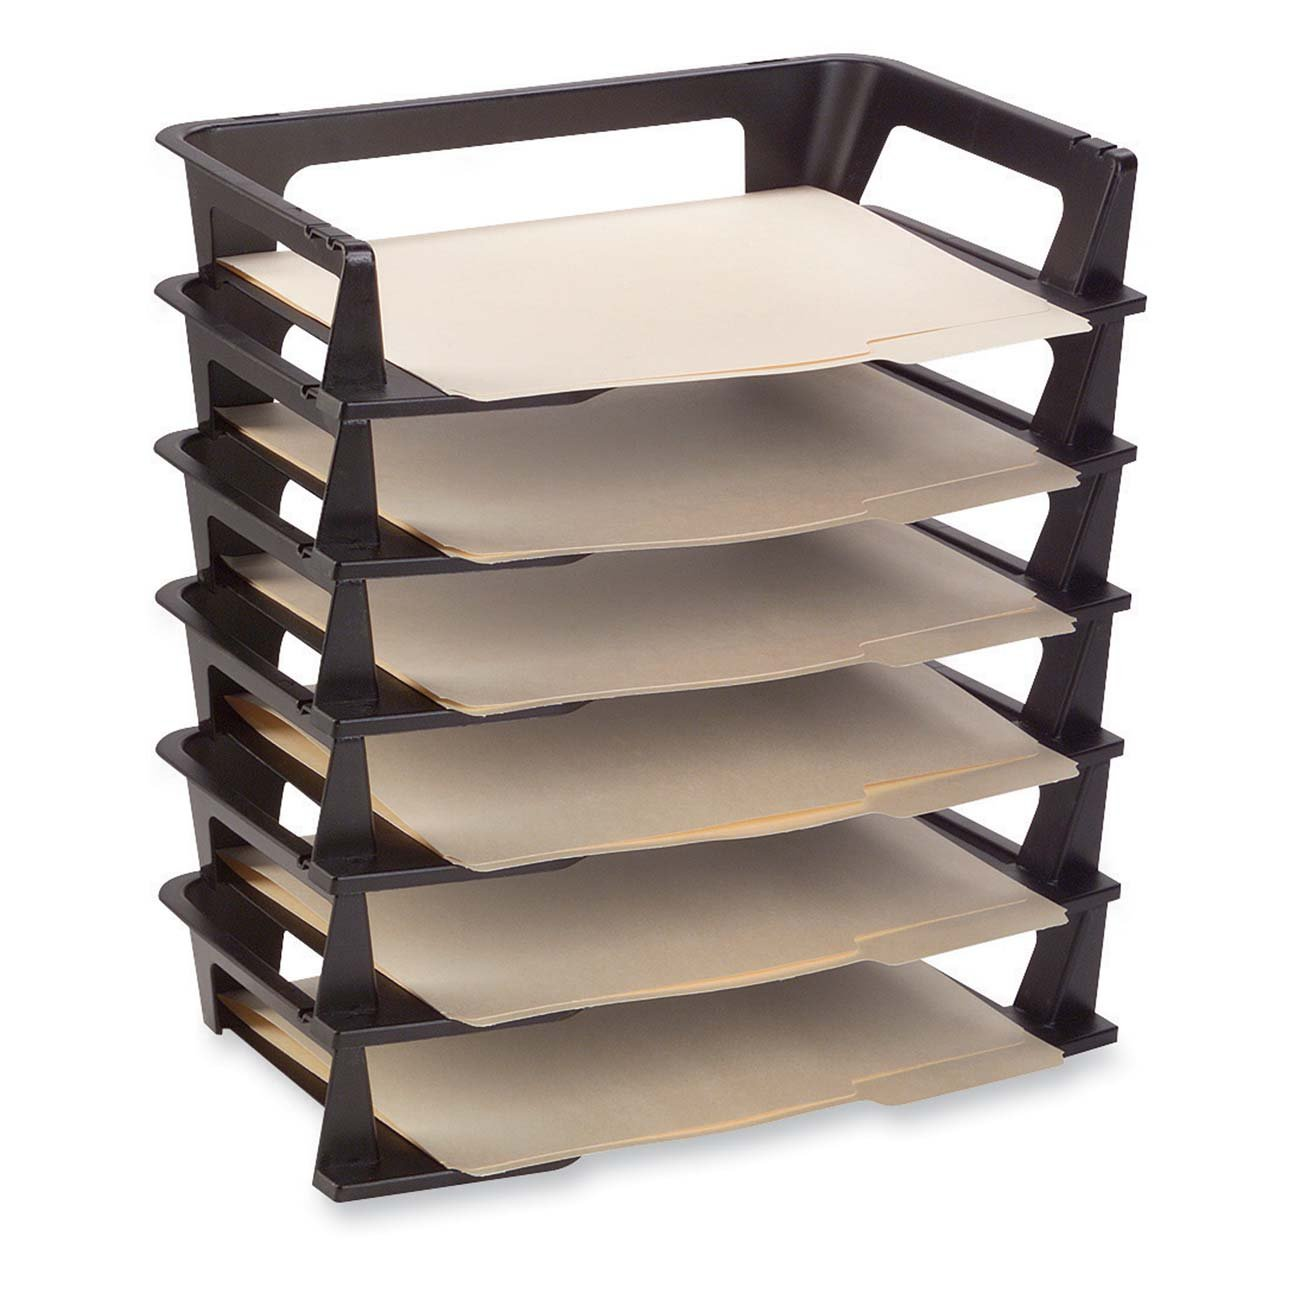 Plastic letter a4 office tray 6 pack stackable shelf - Paper organizer for desk ...